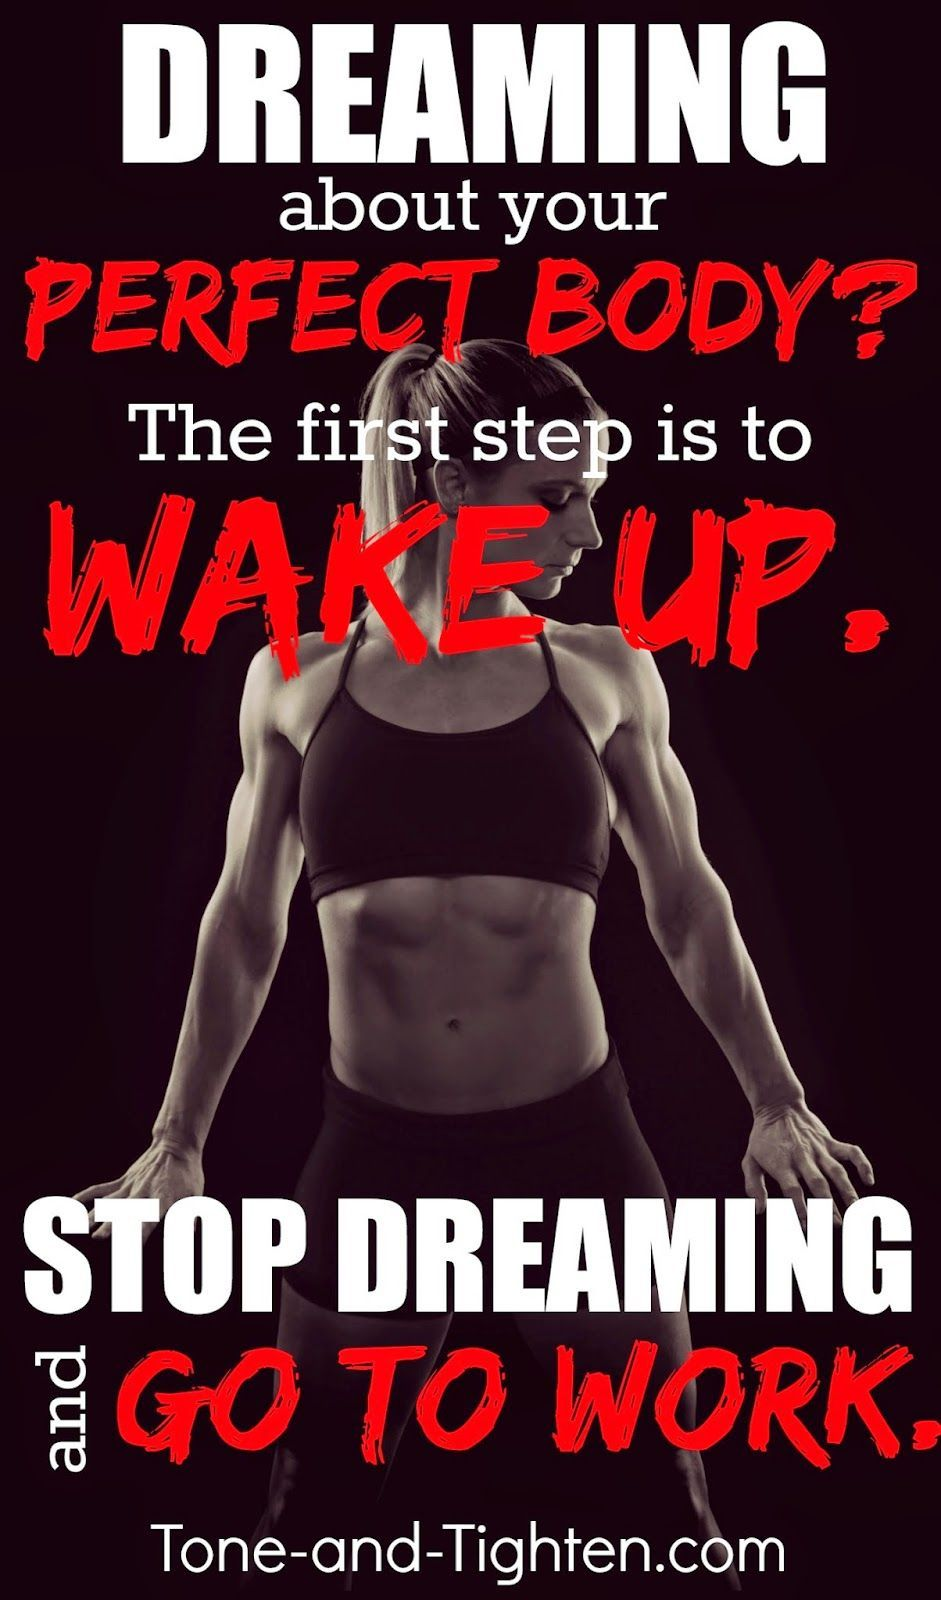 The quickest way to realize your dreams? First step is to wake up. Second is go to work. #fitness #m...